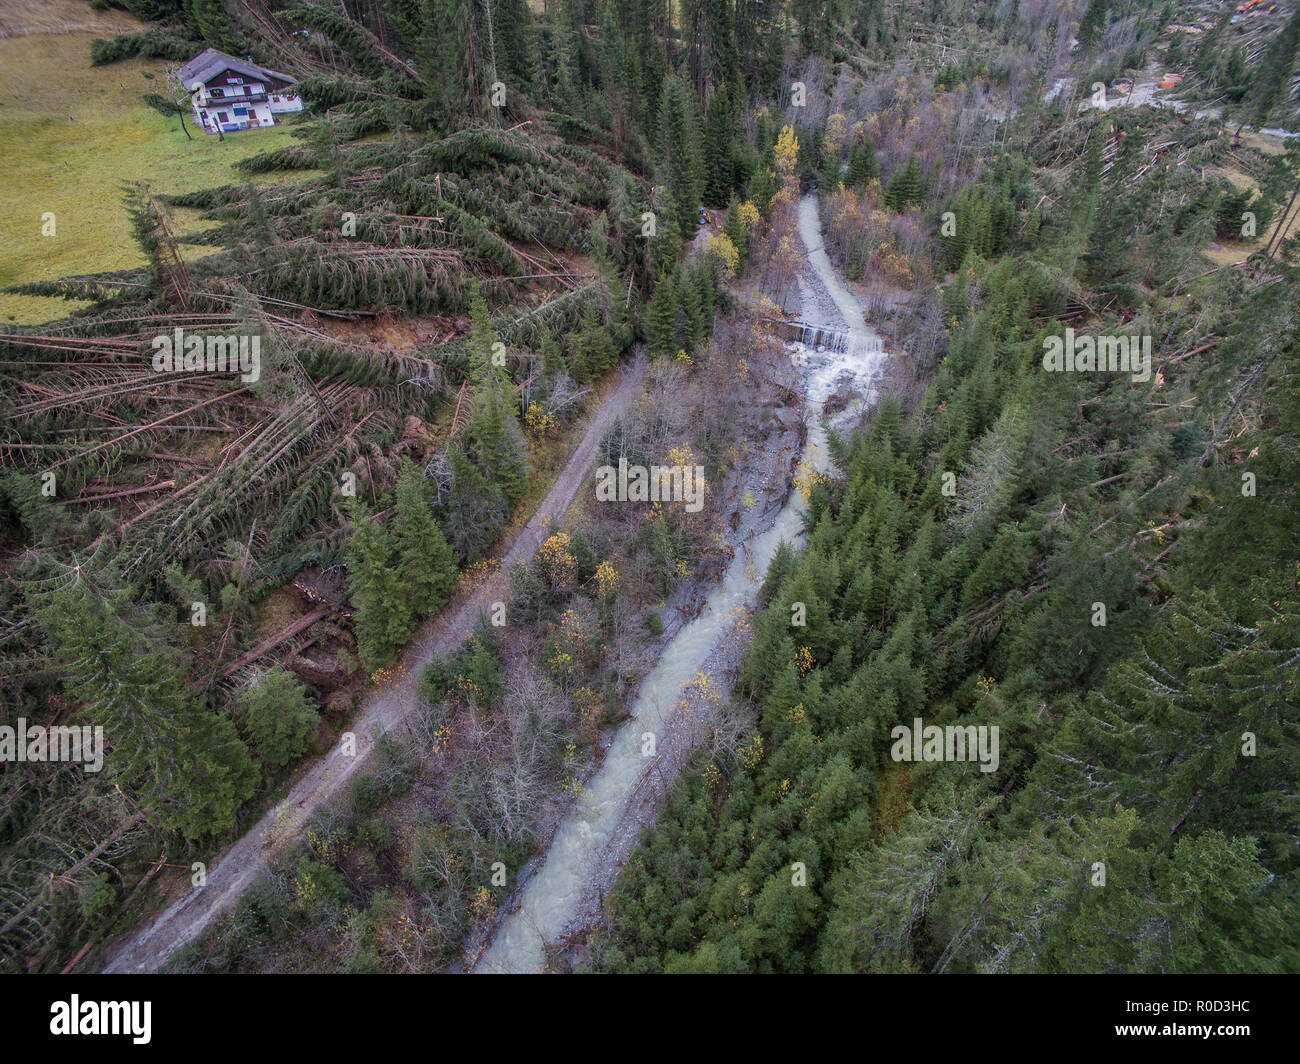 Belluno, Italy. 03th November, 2018. Overview made with the drone of the damage caused by the flood in the Belluno area, in Val Visdende Belluno, Italy. © Stefano Mazzola / Awakening / Alamy Live News - Stock Image